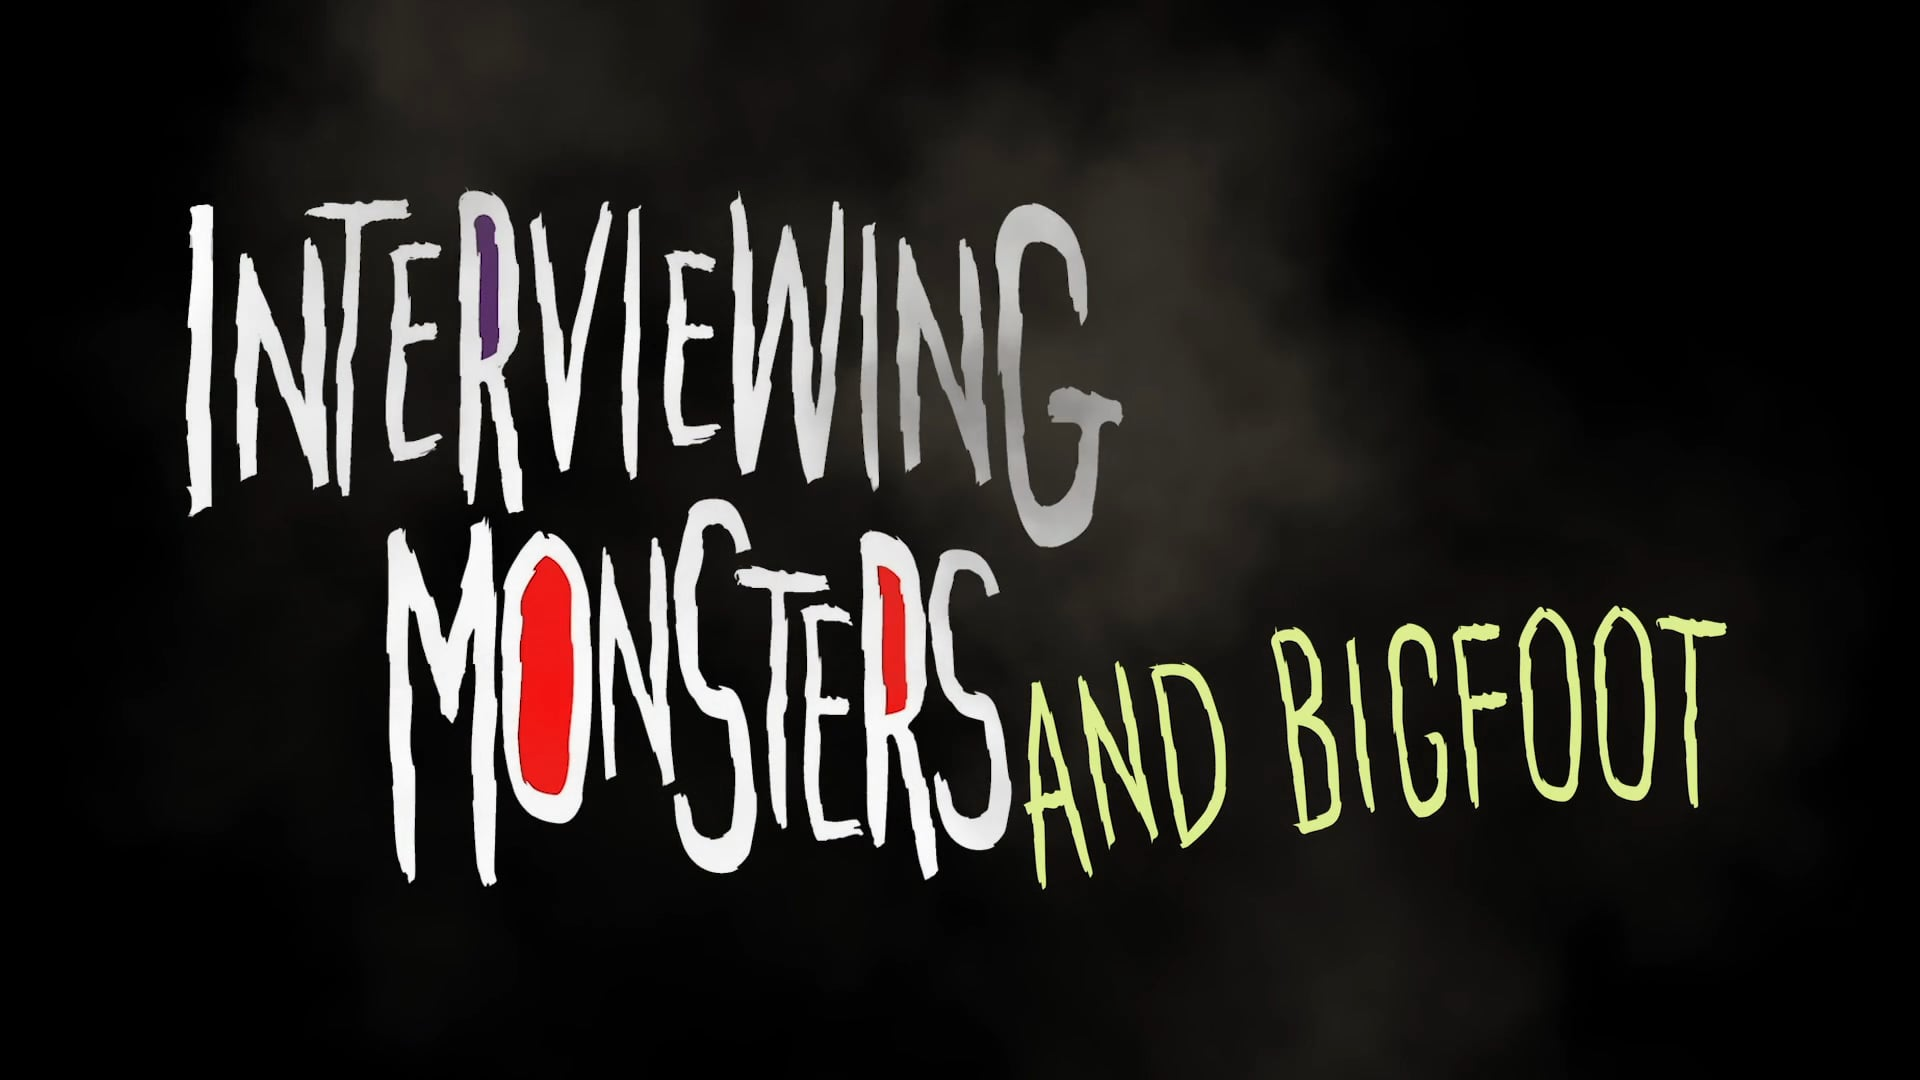 Interviewing Monsters - 130 sec Official Trailer